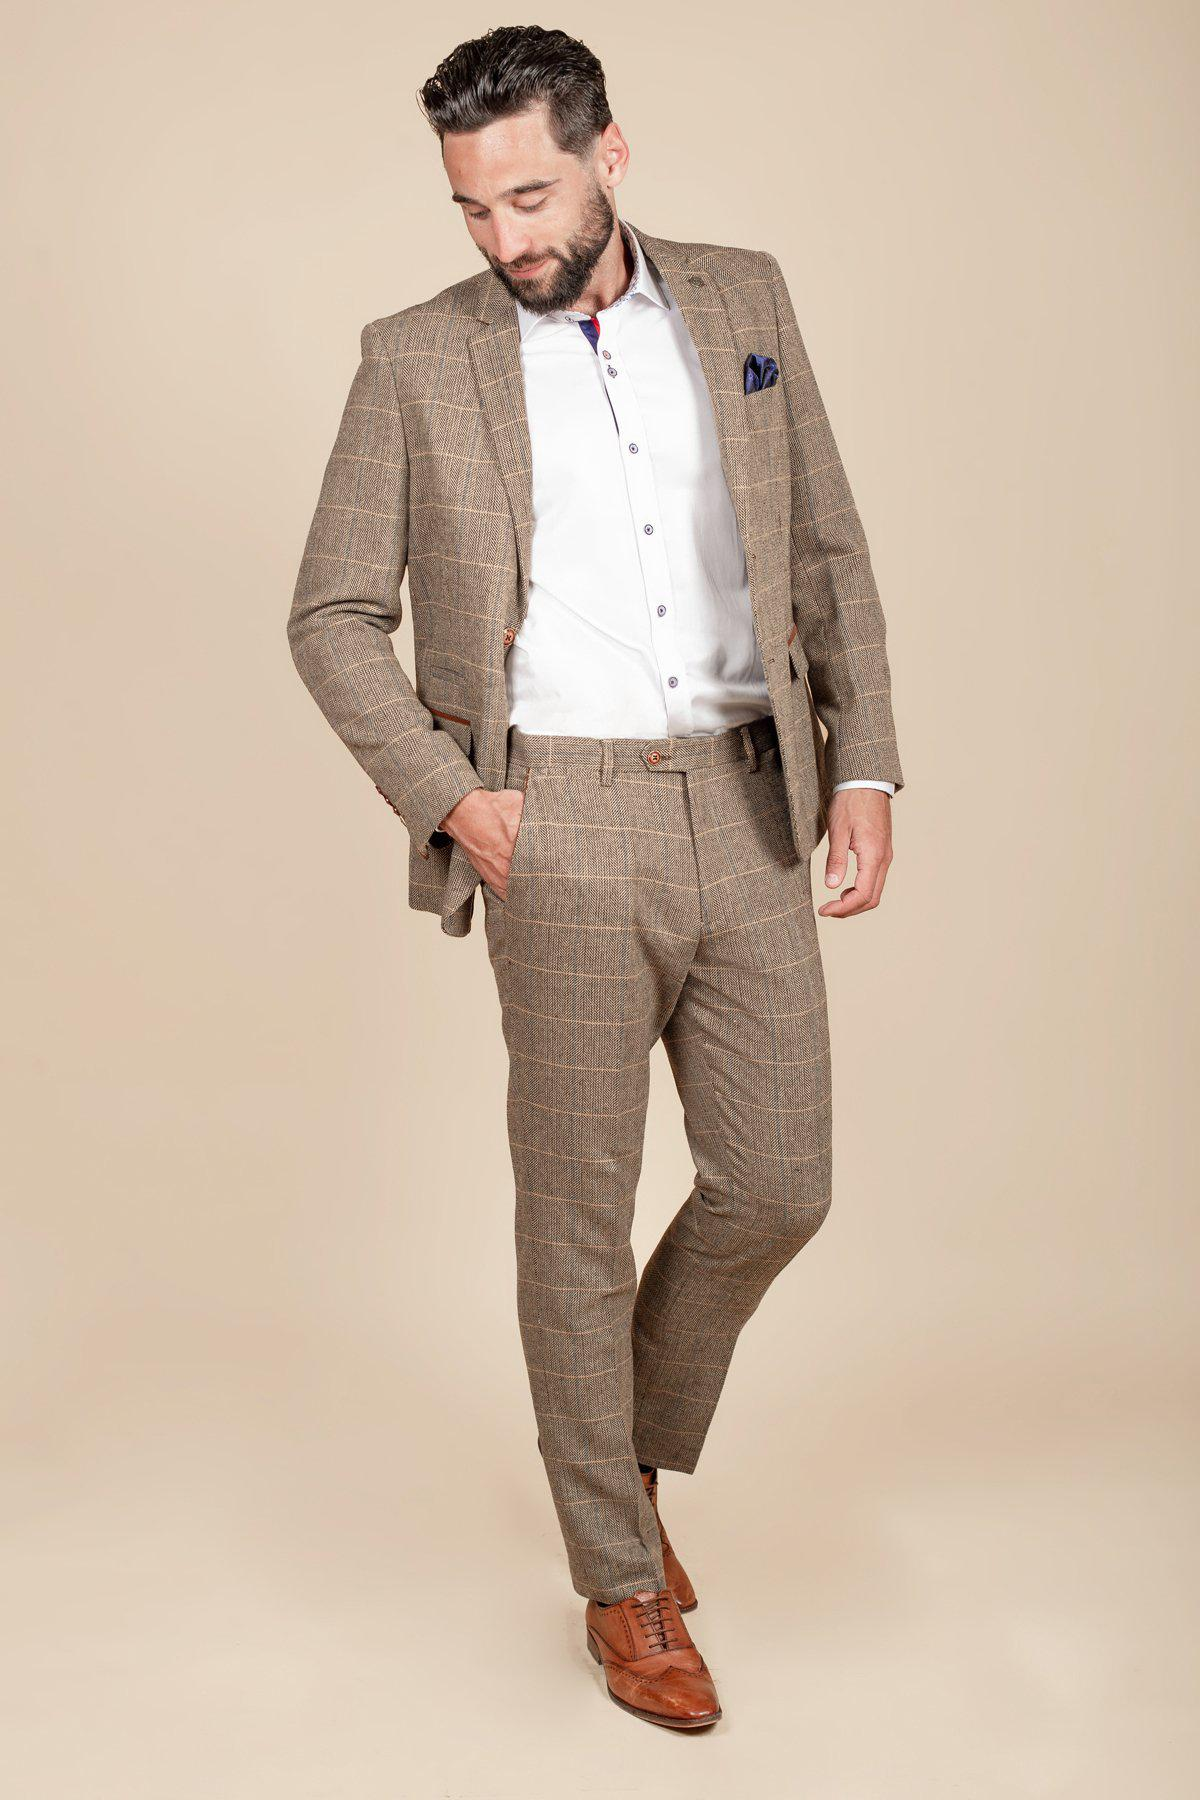 TED - Tan Tweed Check Two Piece Suit